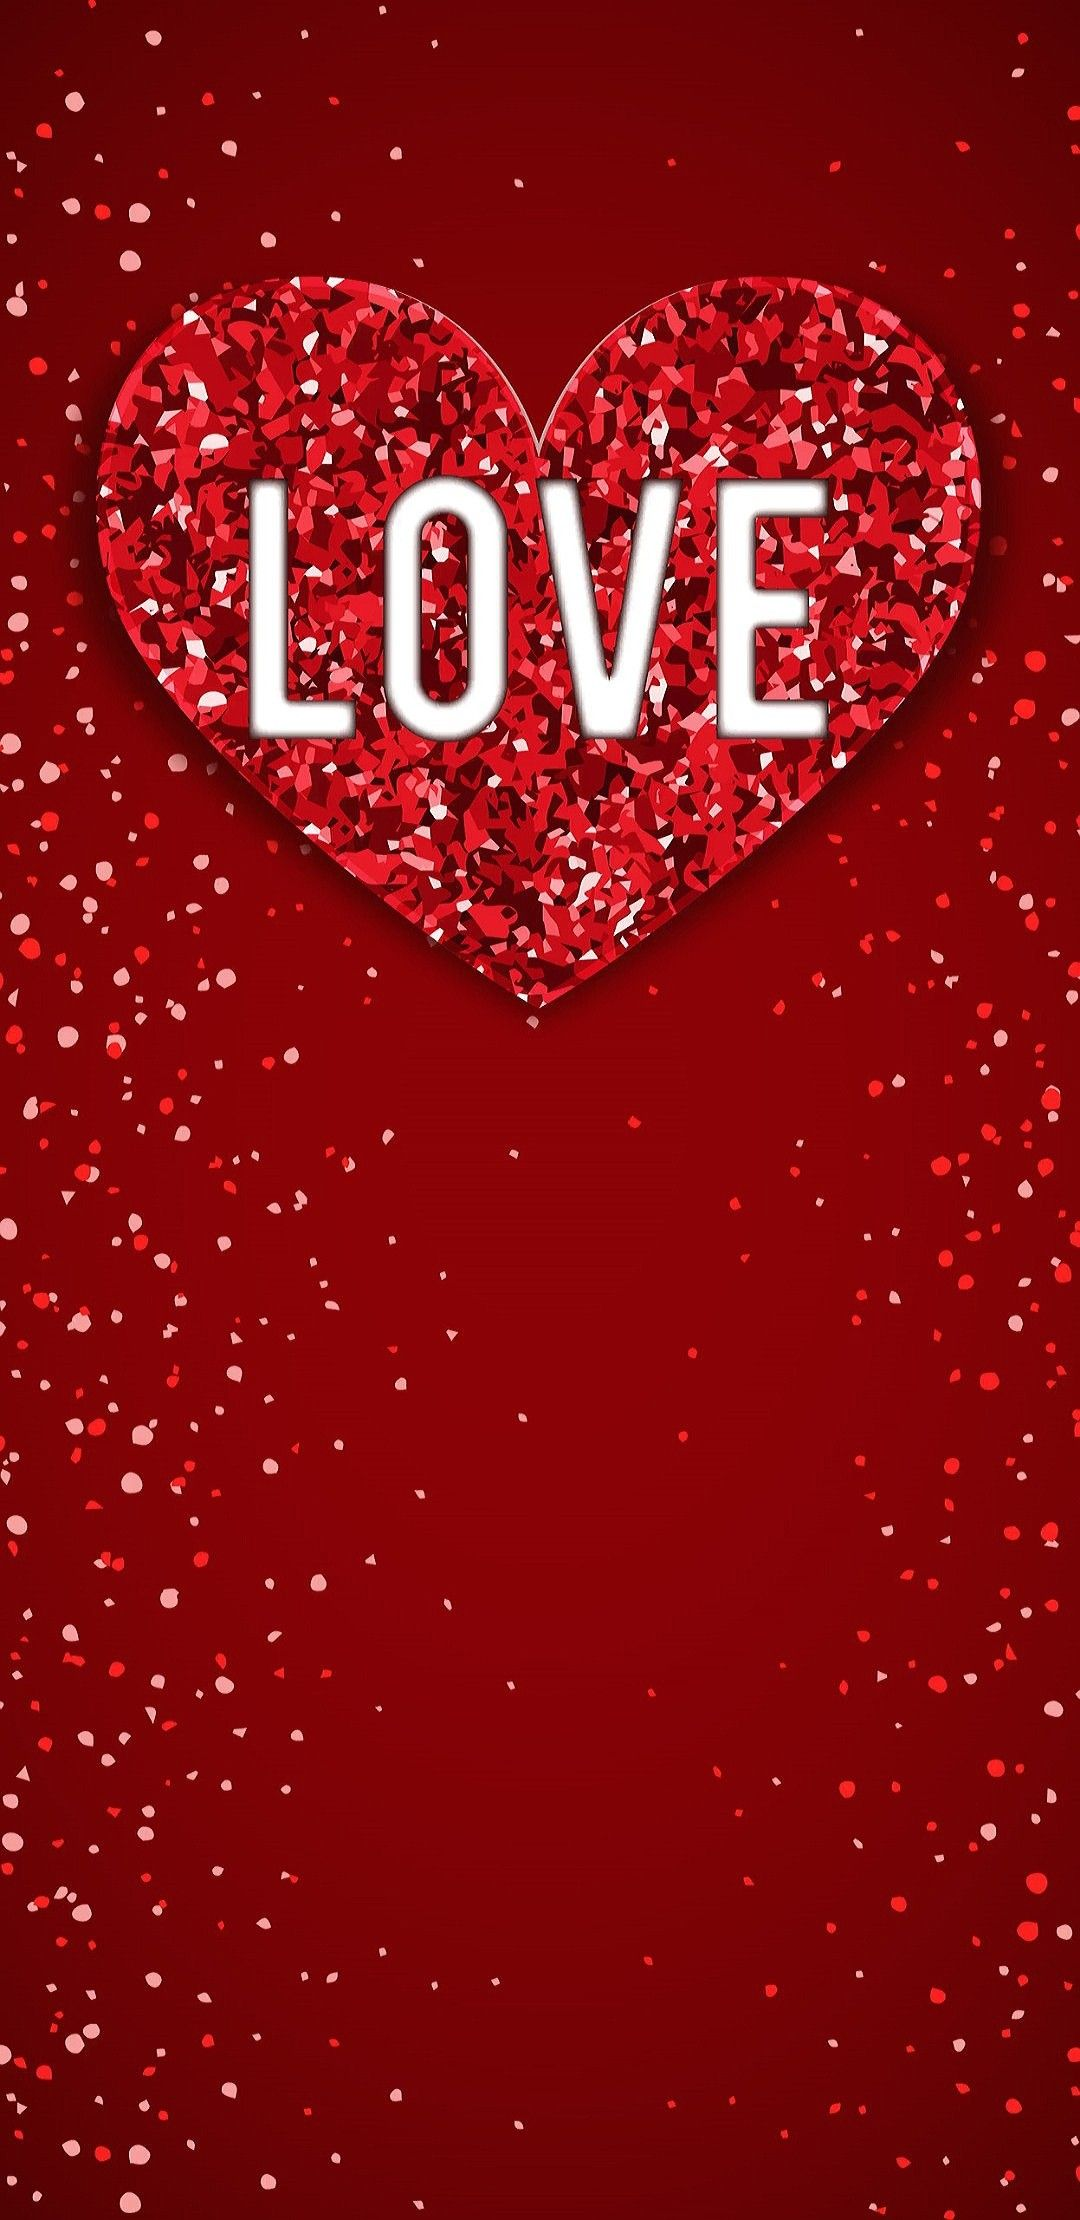 Pin by Maddy on Heart iPhone wallpaper (With images